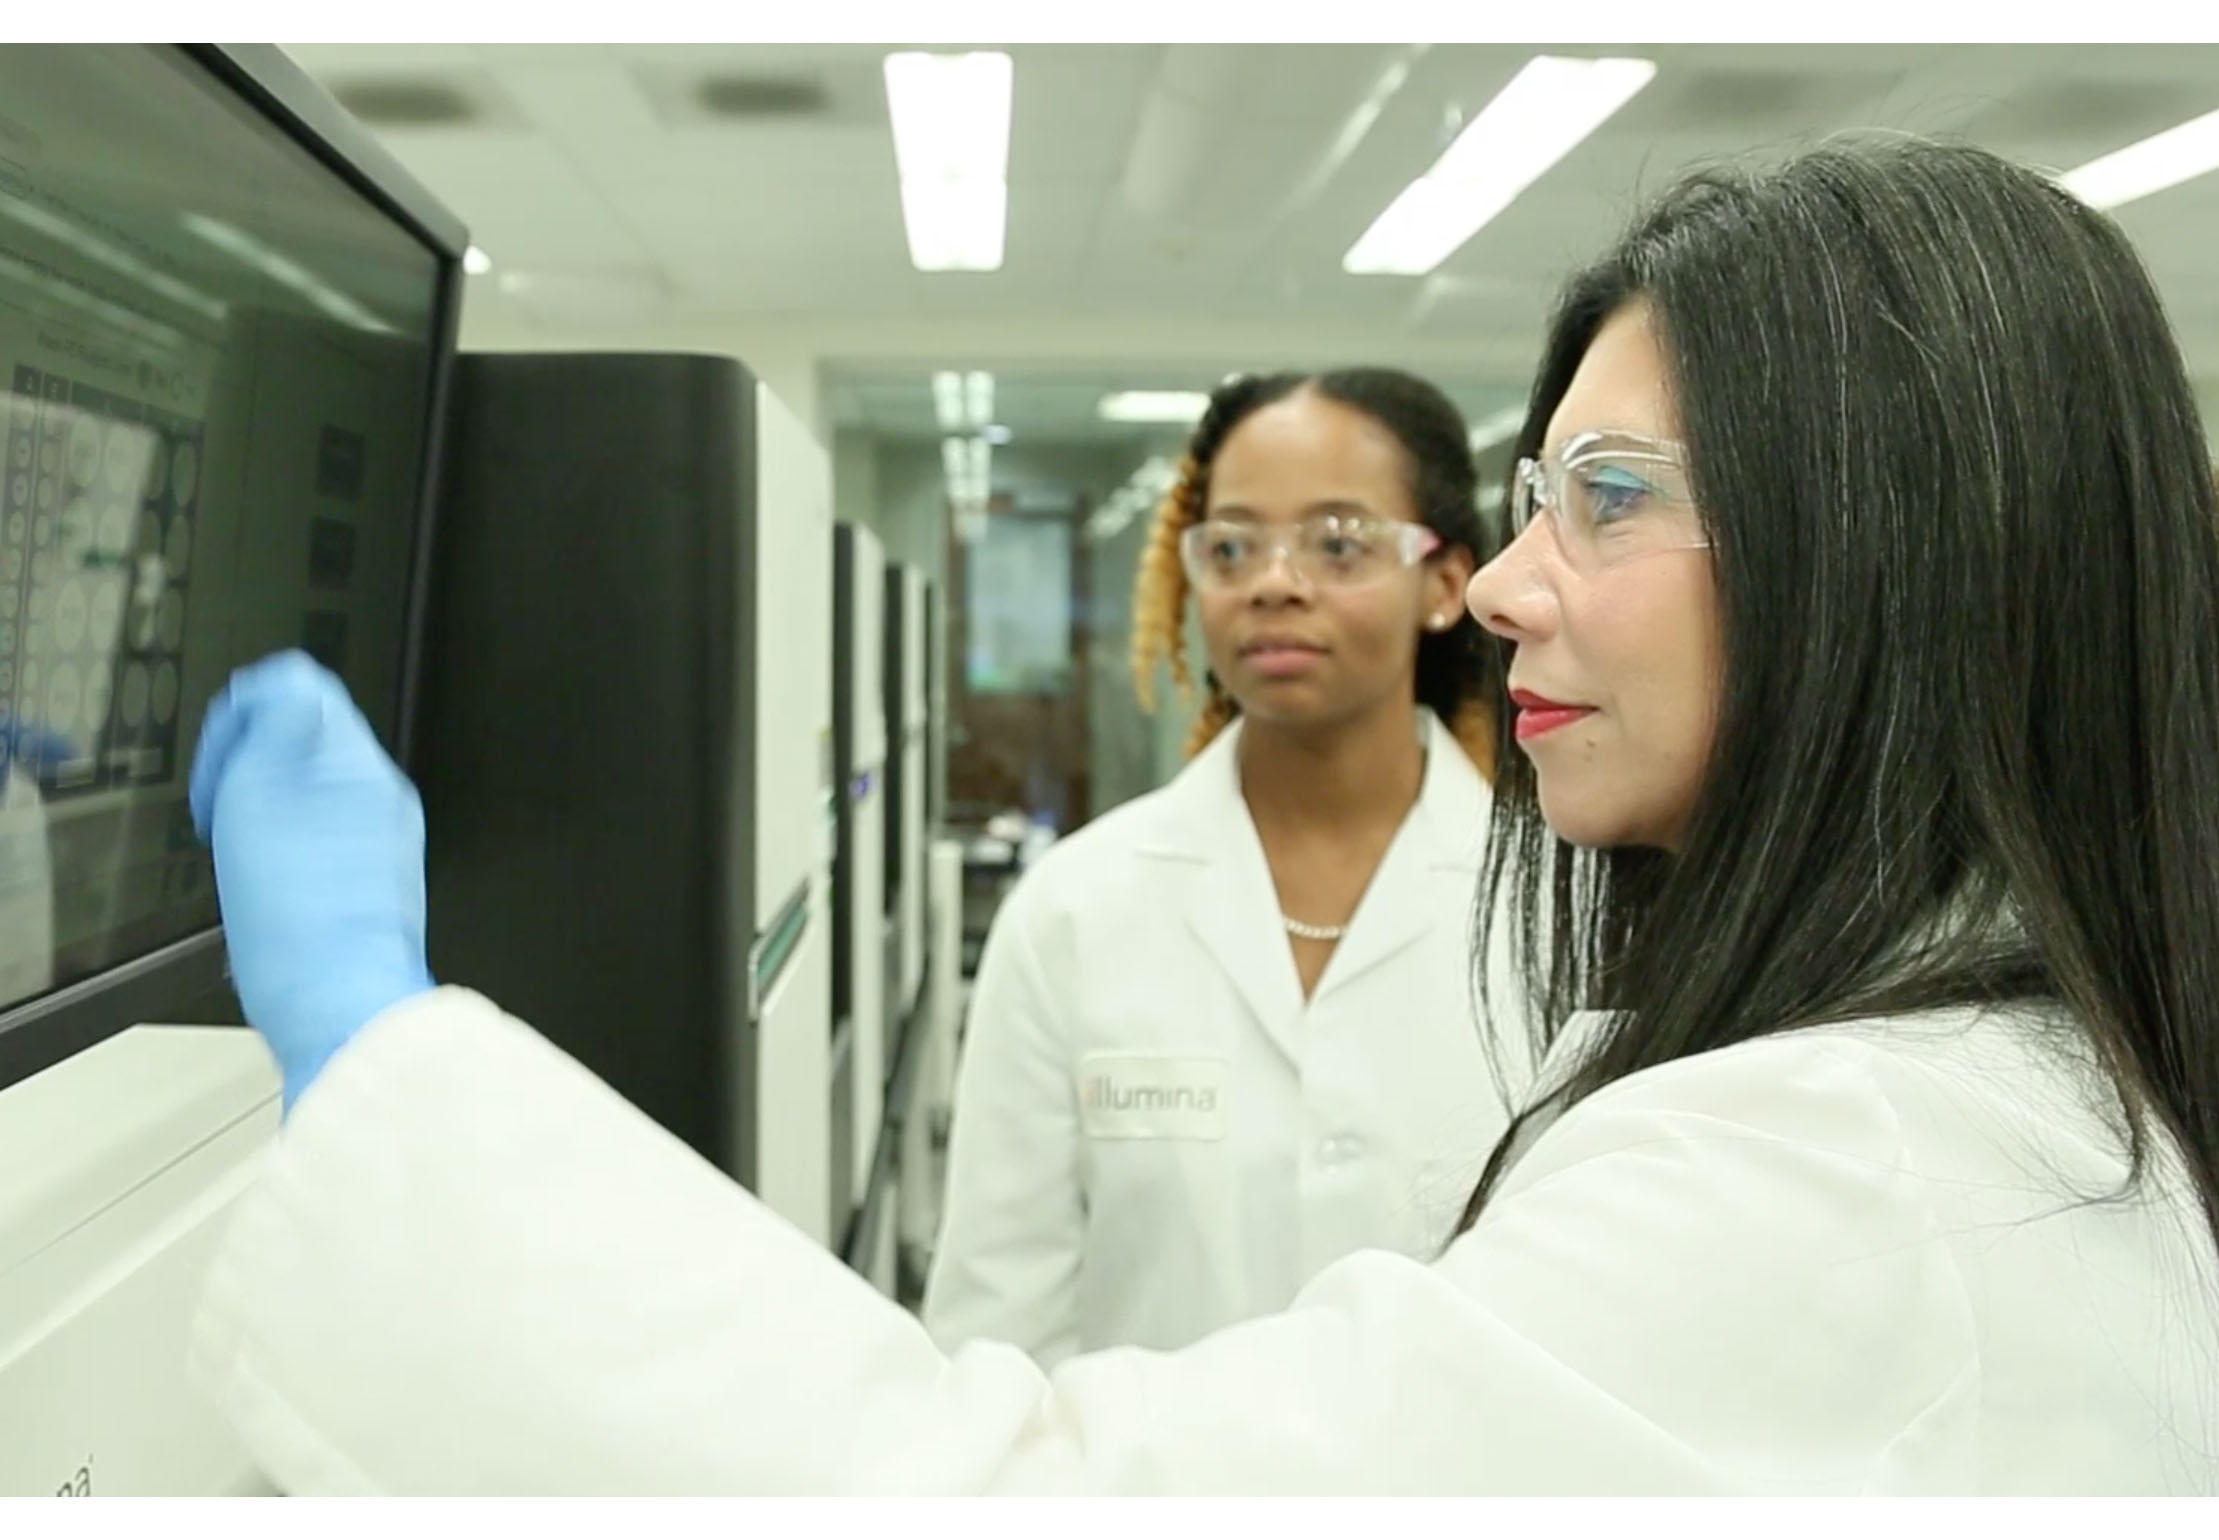 Illumina Honors Women in STEM